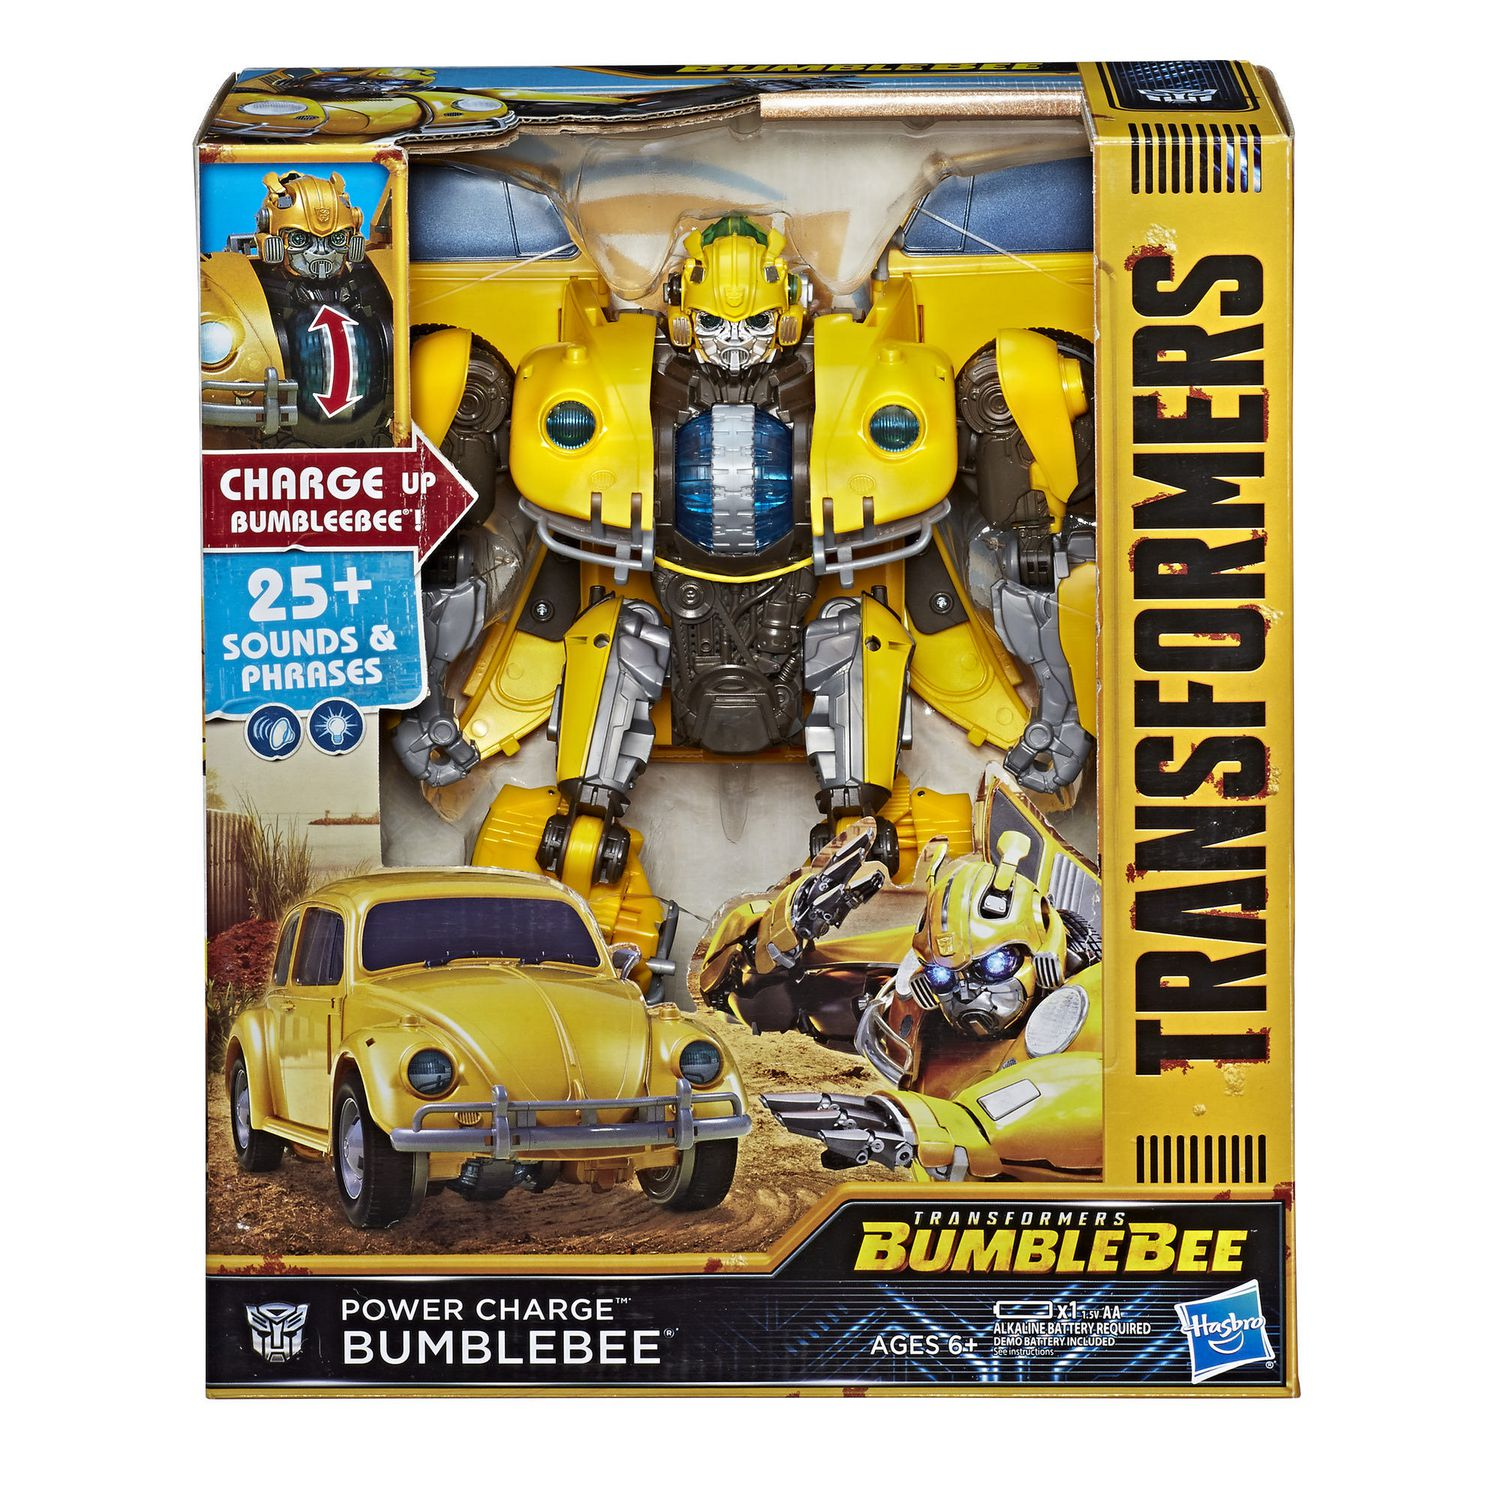 transformers bumblebee movie toys, power charge bumblebee action figure spinning core, lights and sounds toys for kids 6 and up, 10 5 inchBumblebee #16